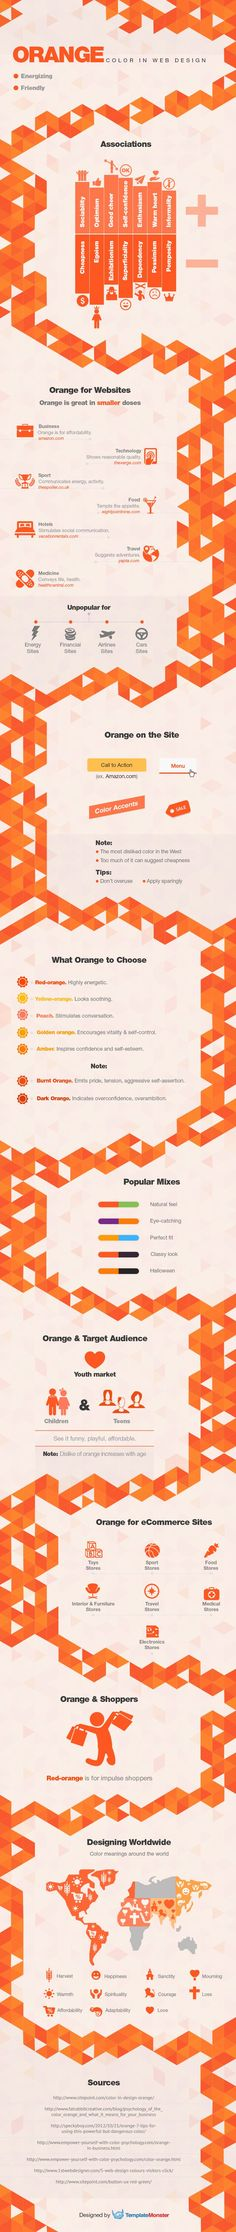 ORANGE color in web design